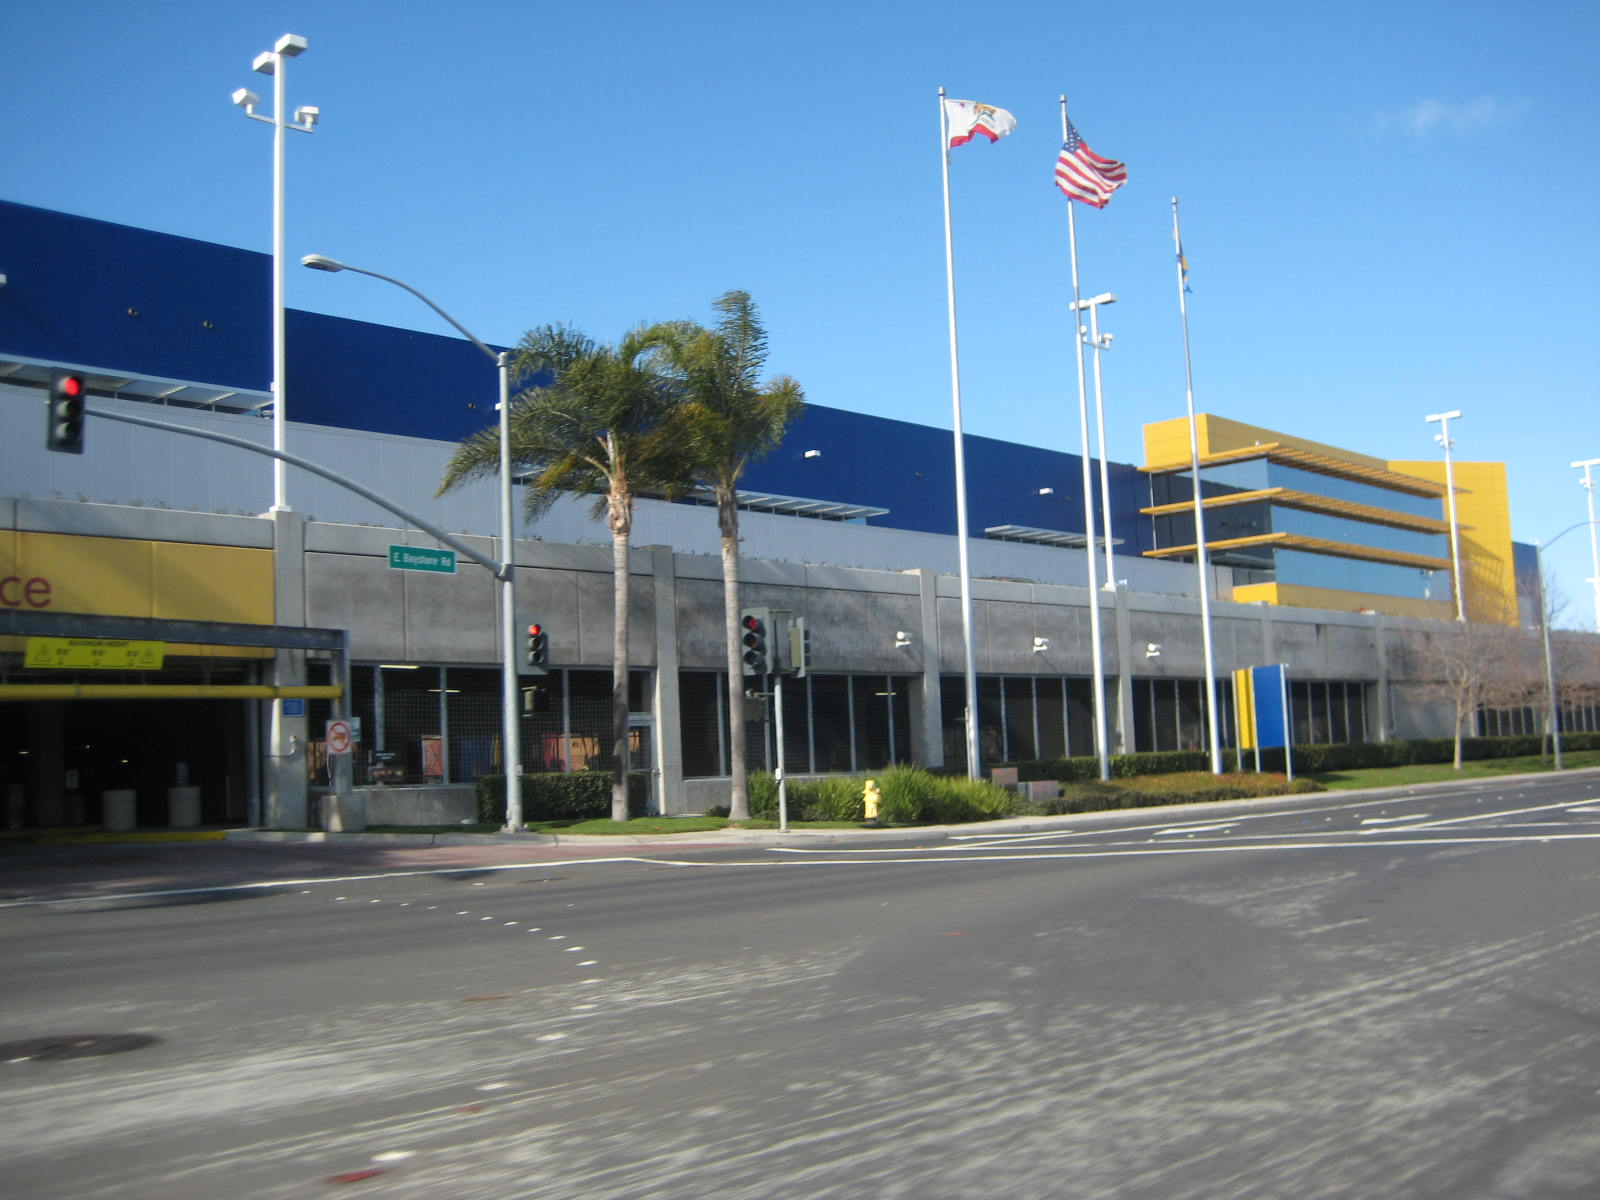 Ikea east palo alto california for Www ikea com palo alto